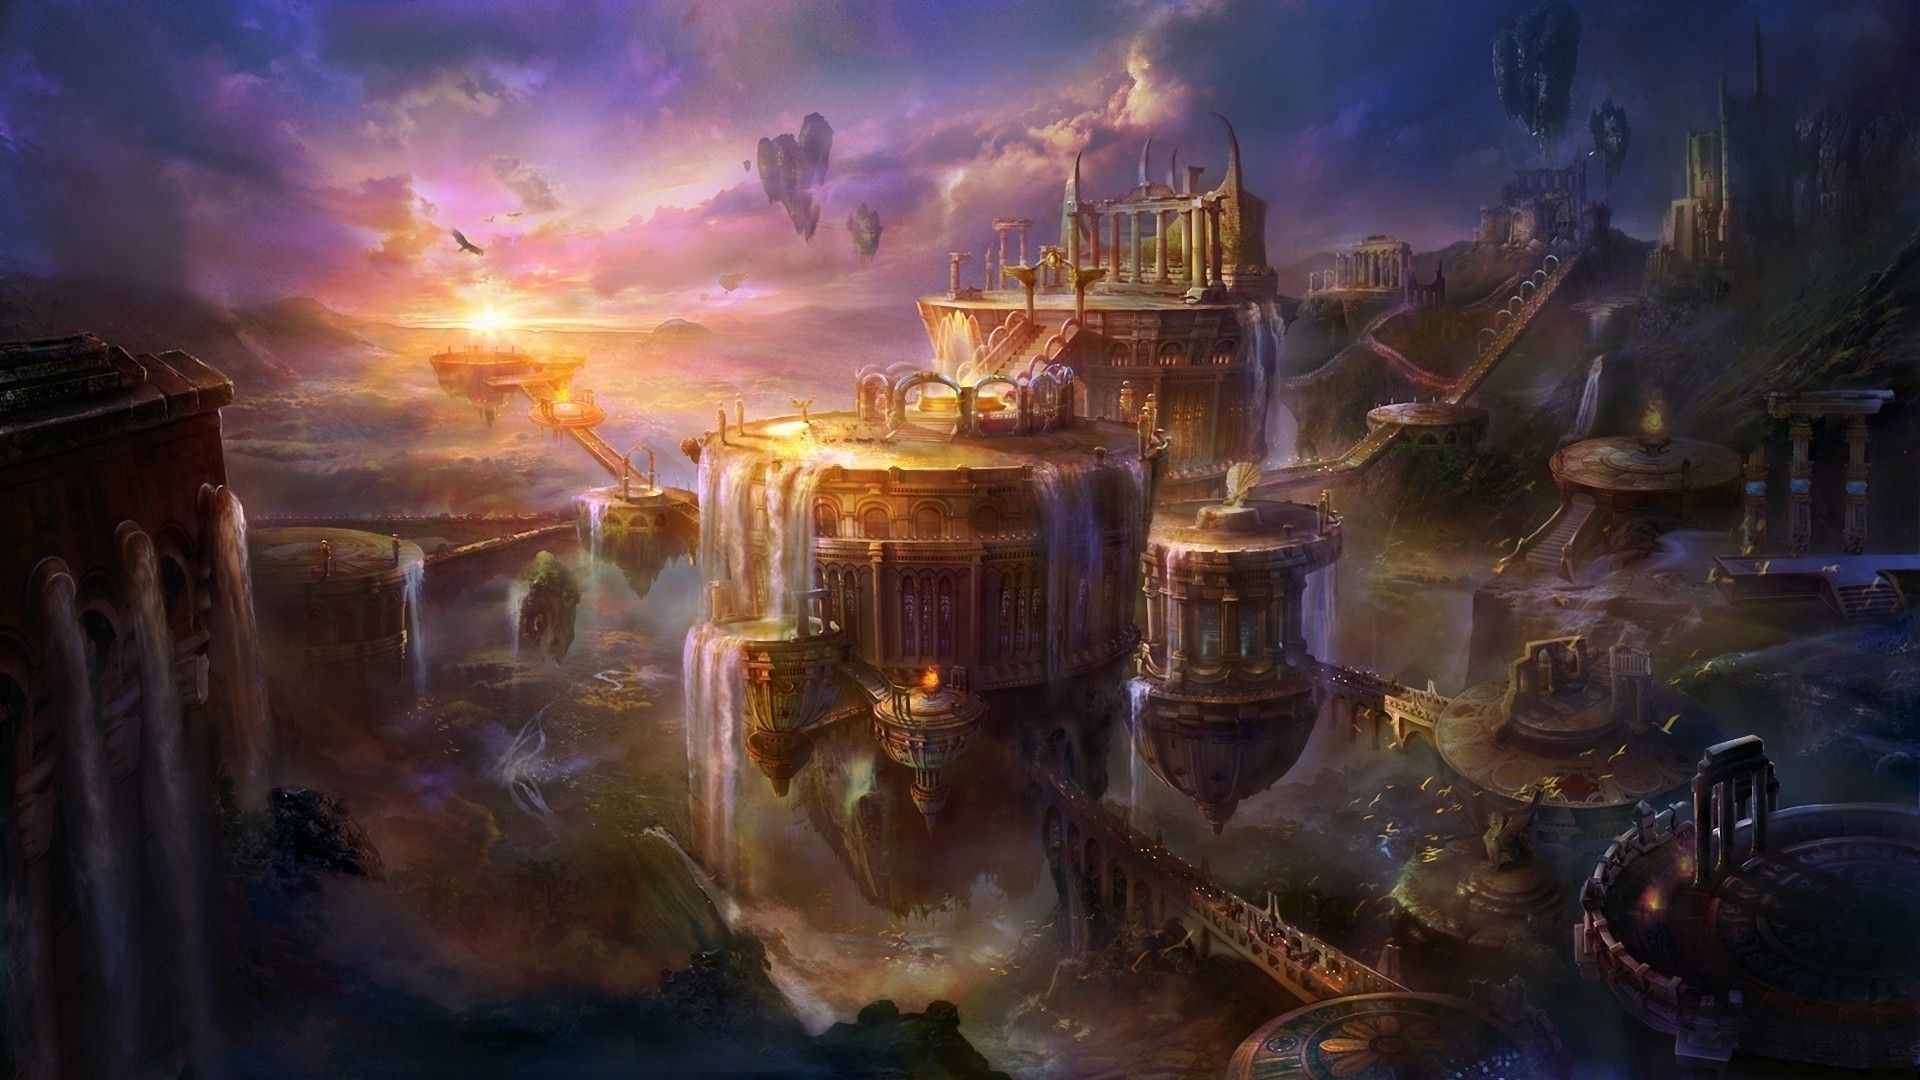 epic fantasy wallpapers ·①